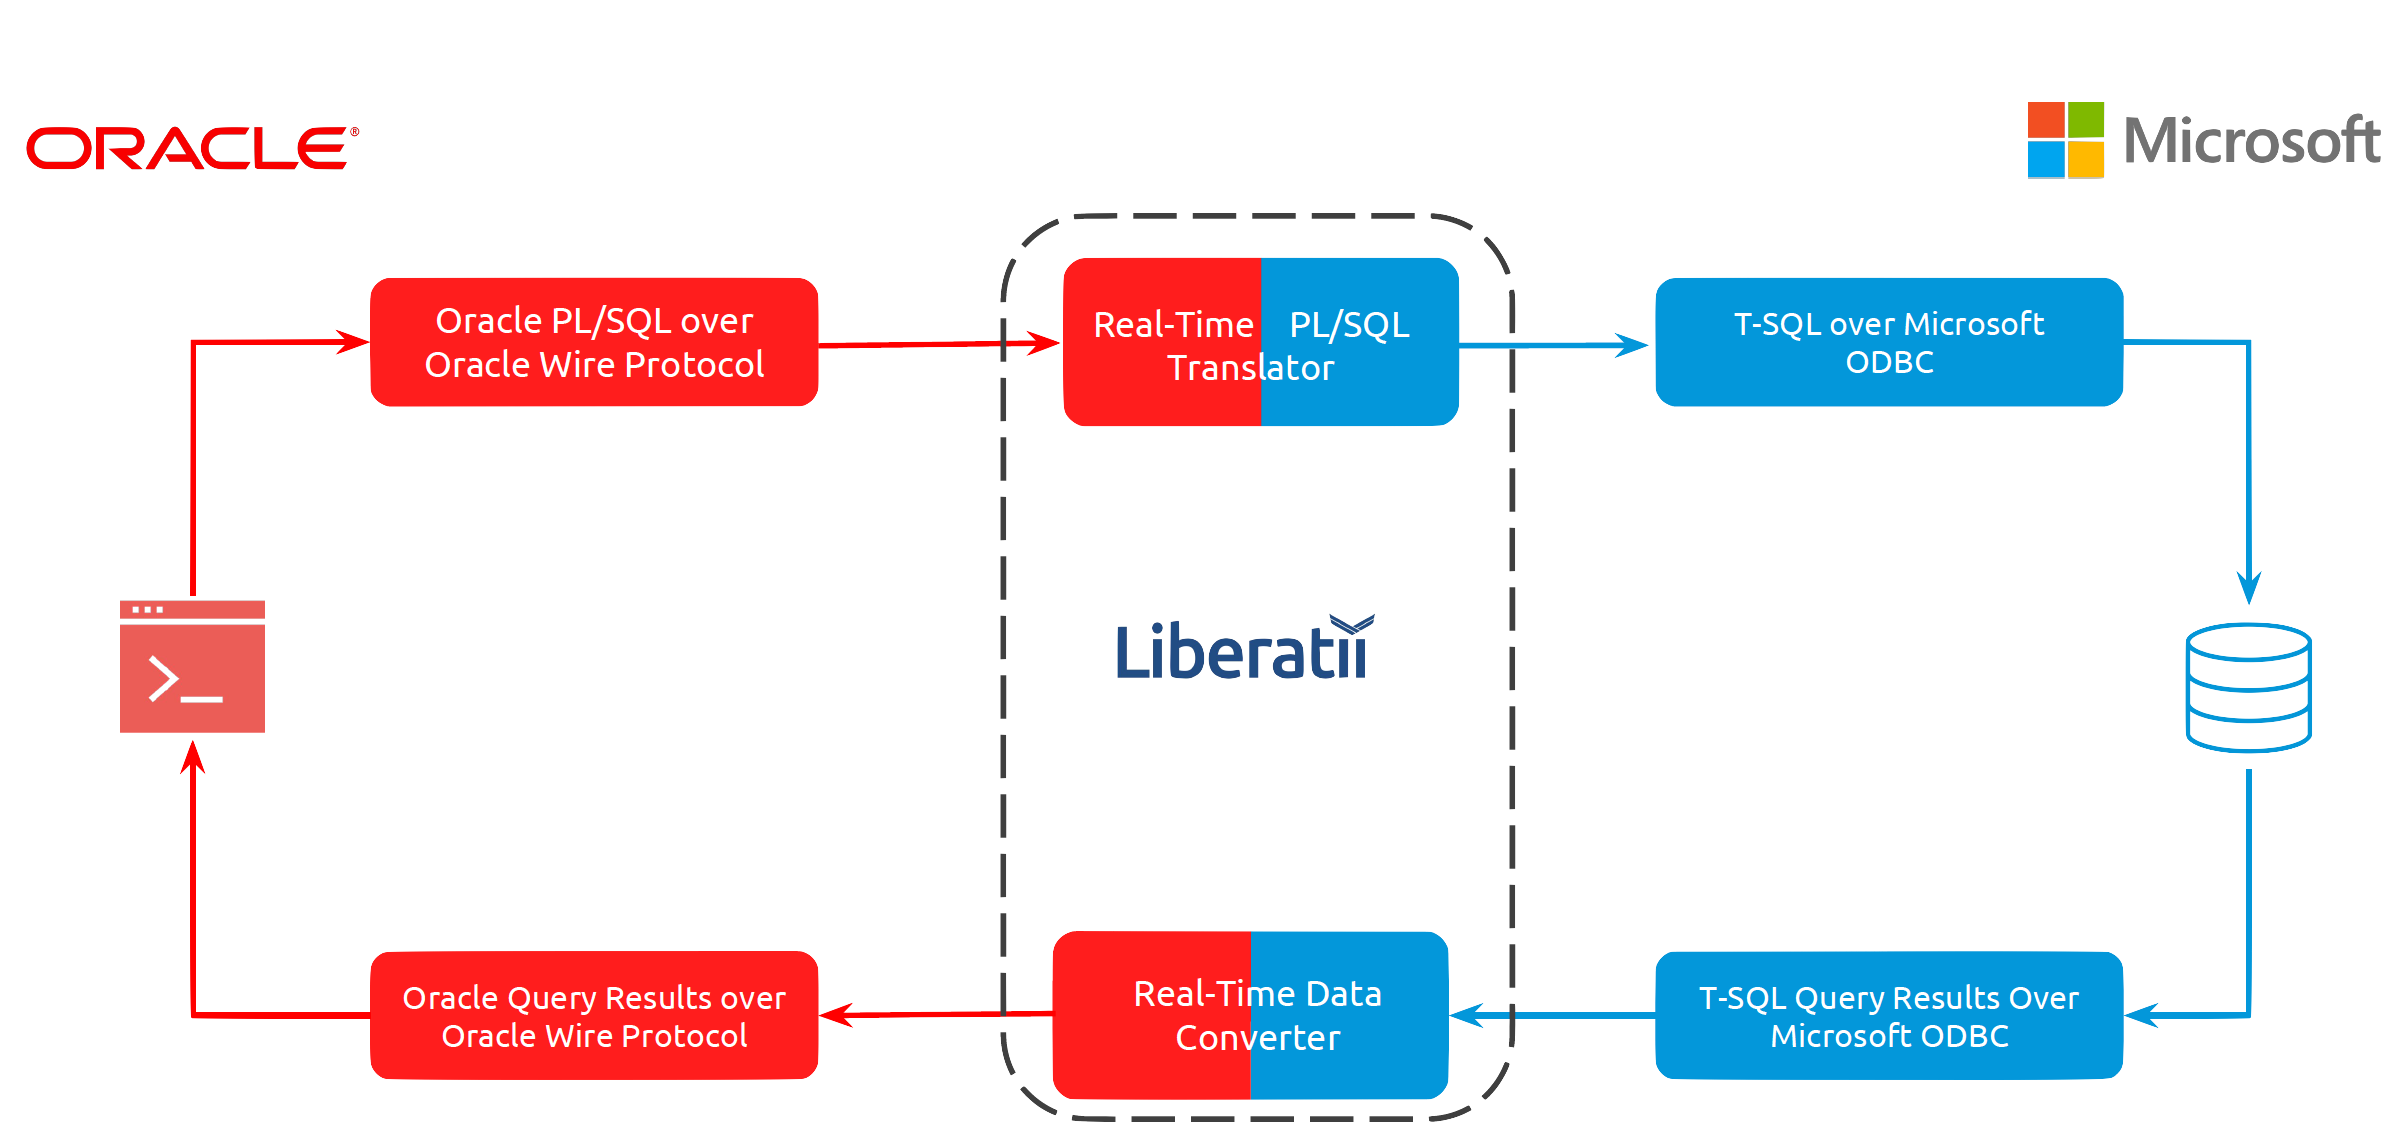 Liberatii Gateway for re-platforming Oracle apps on Azure SQL database